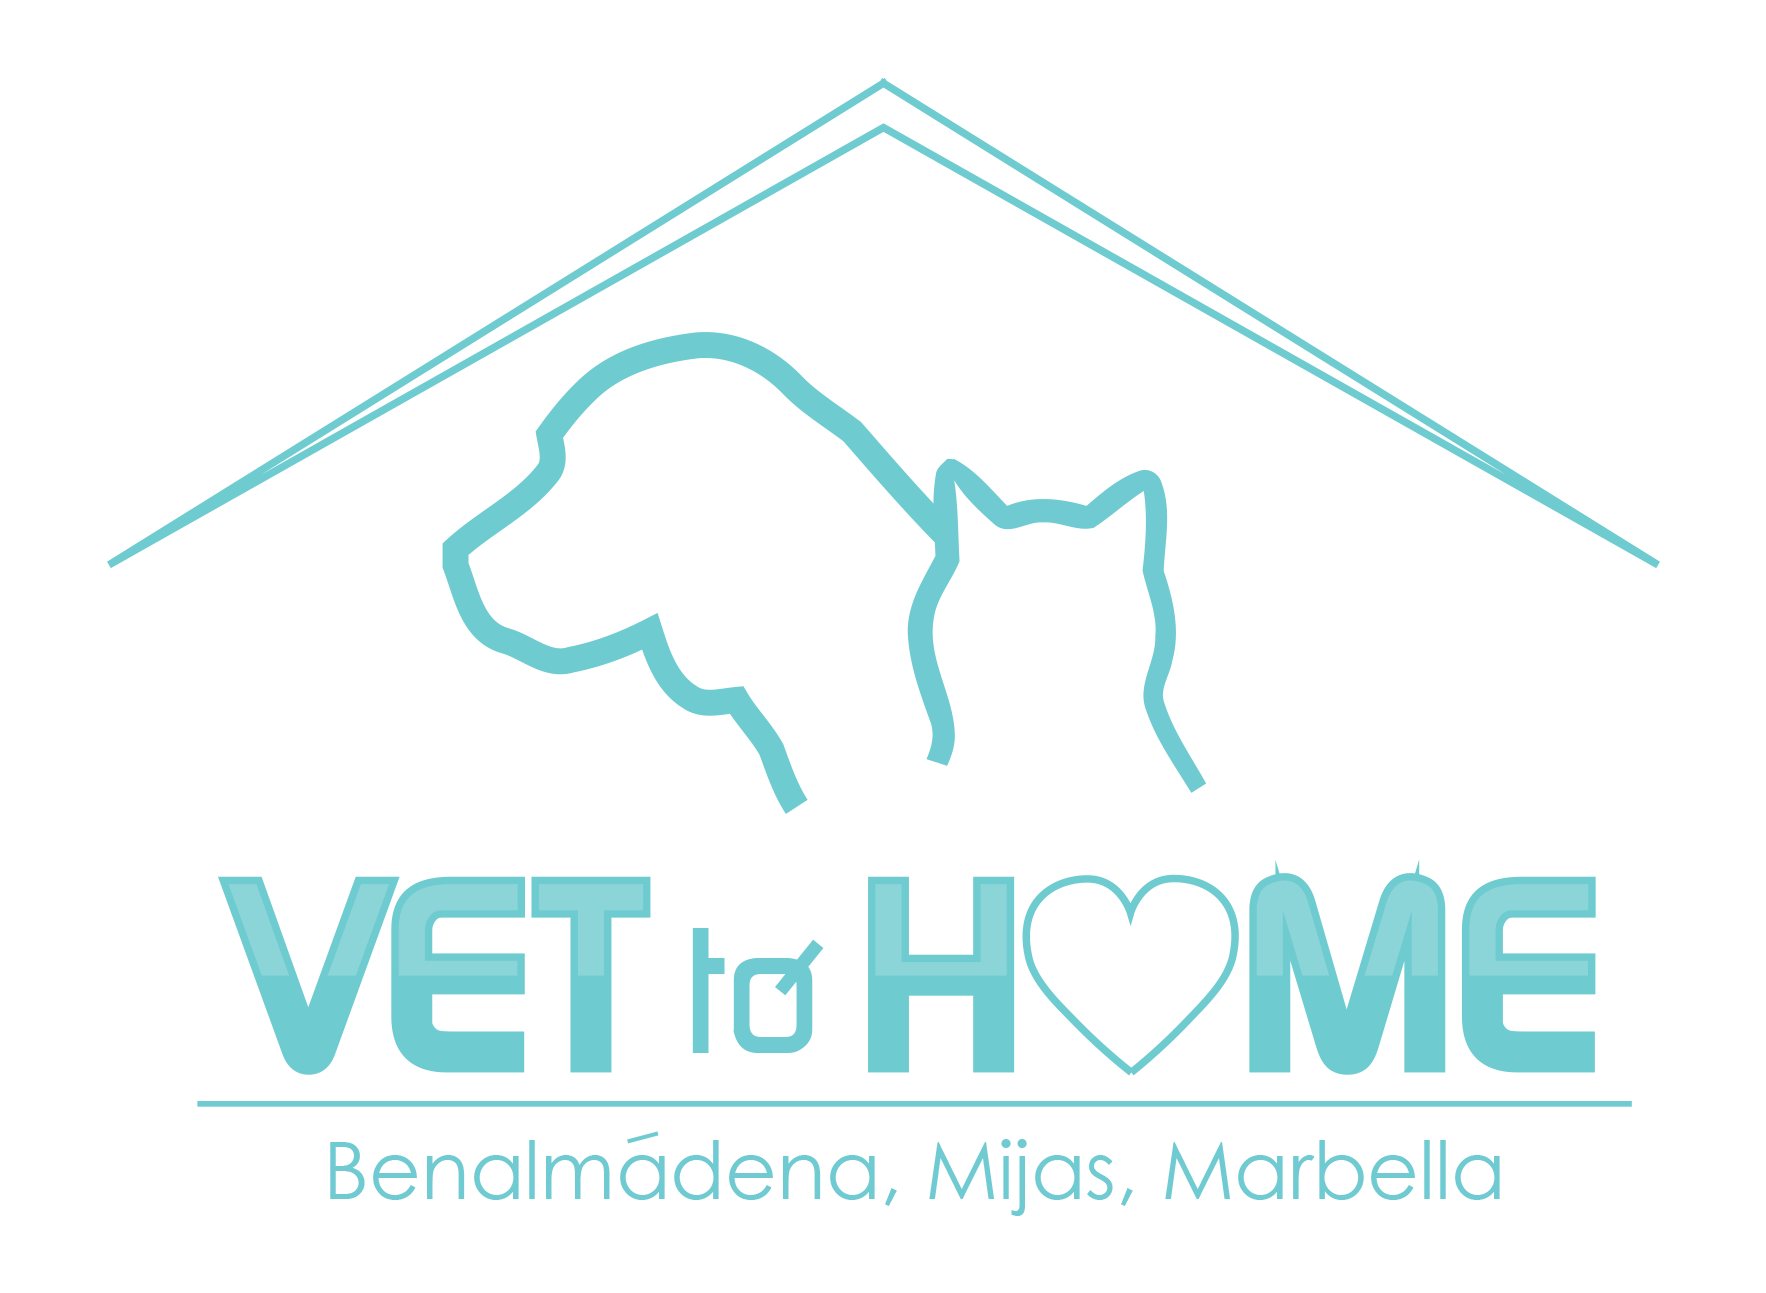 vet to home marbella mijas